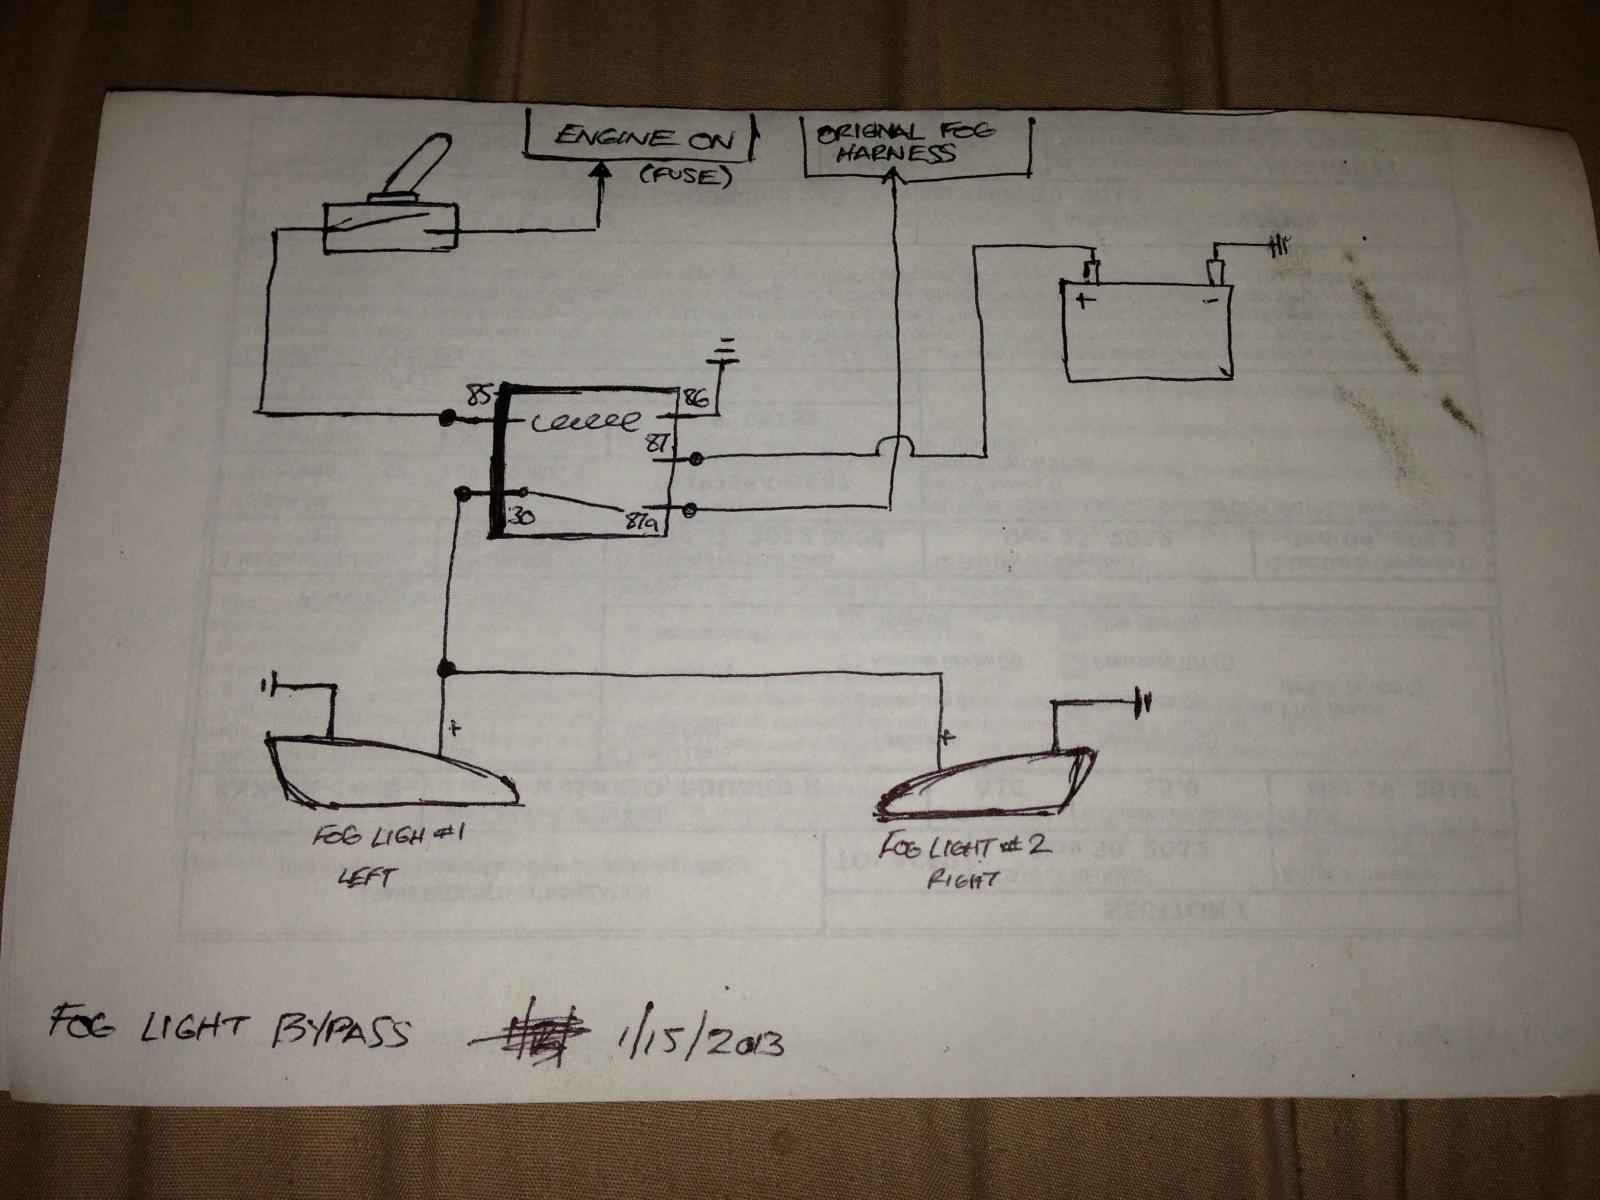 simple wiring diagram to bypass foglights works w o headlights or w rh optimaforums com simple wiring diagram for fog lights simple wiring diagram for fog lights